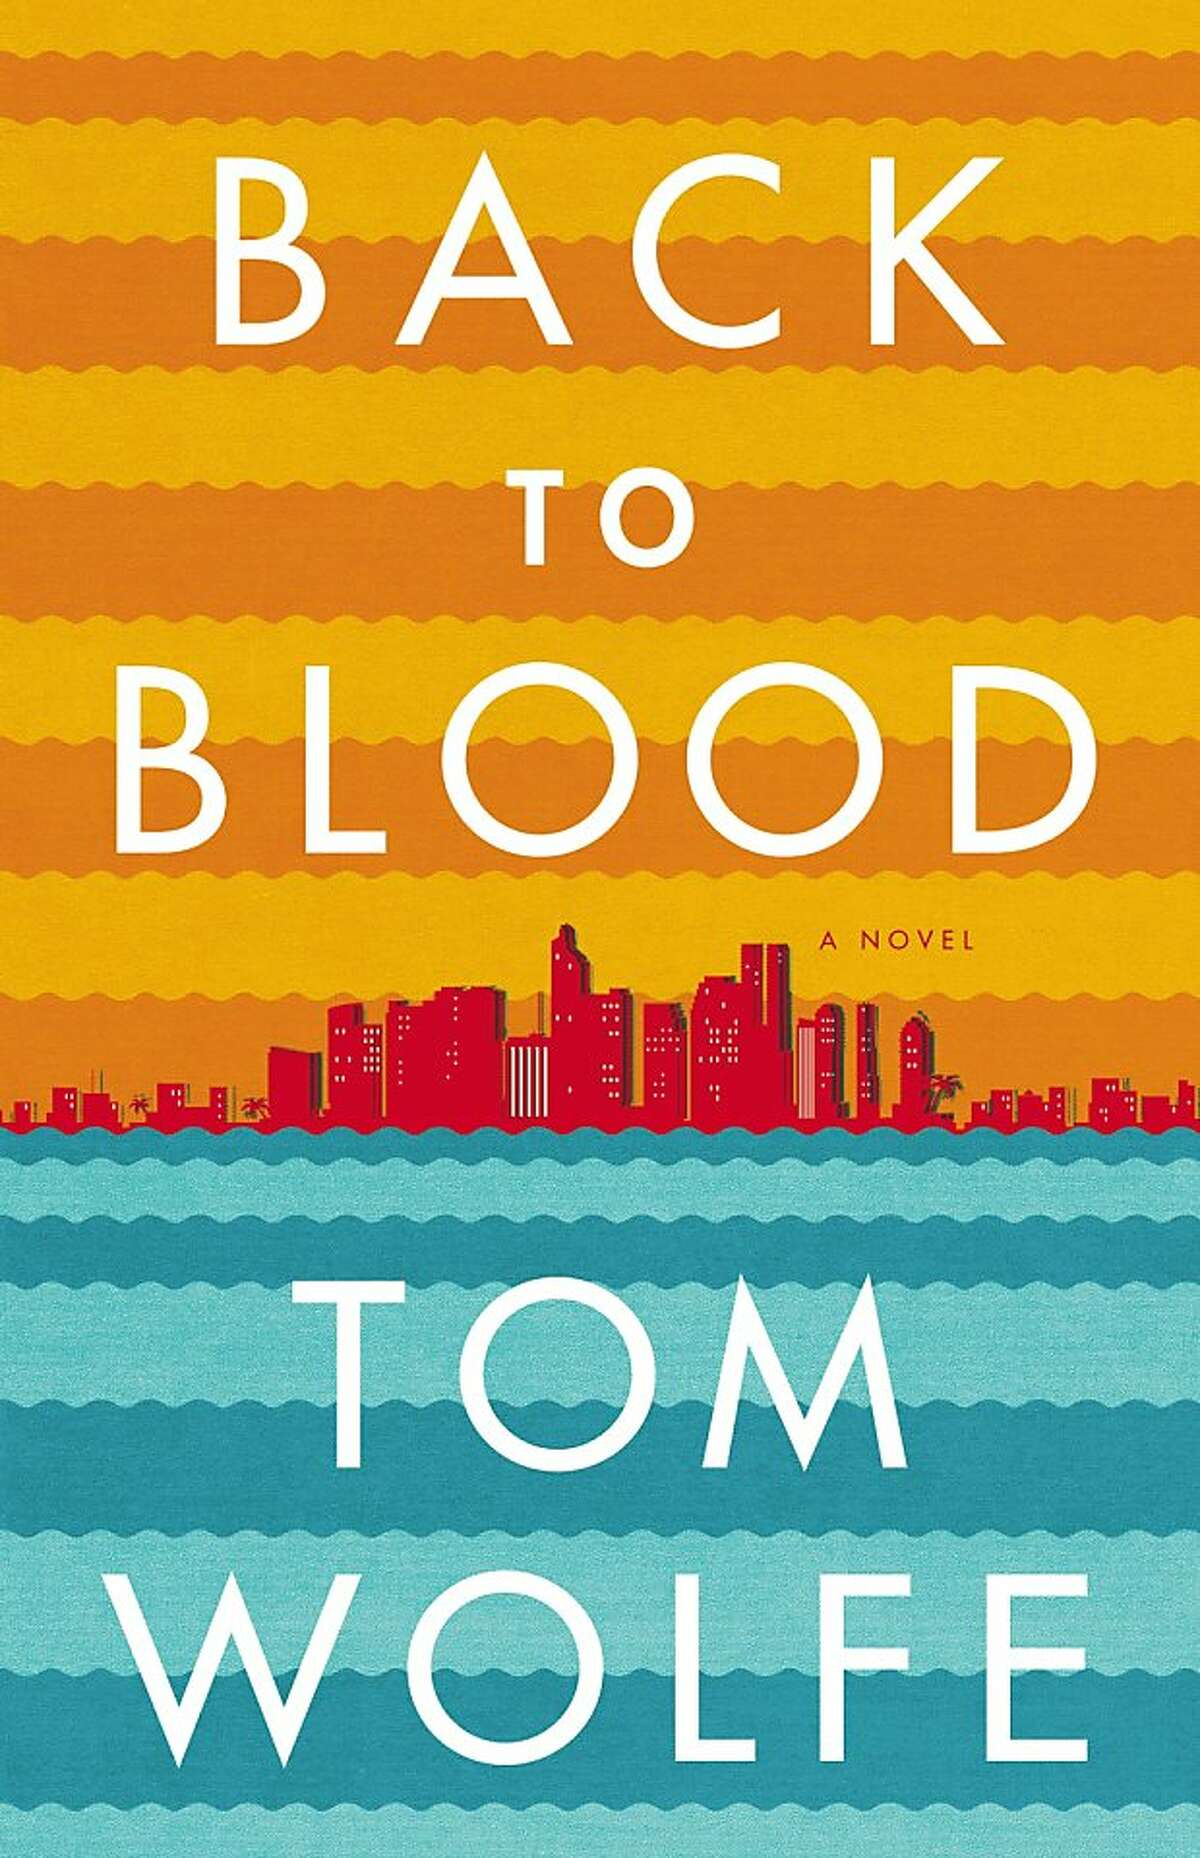 Back to Blood, by Tom Wolfe